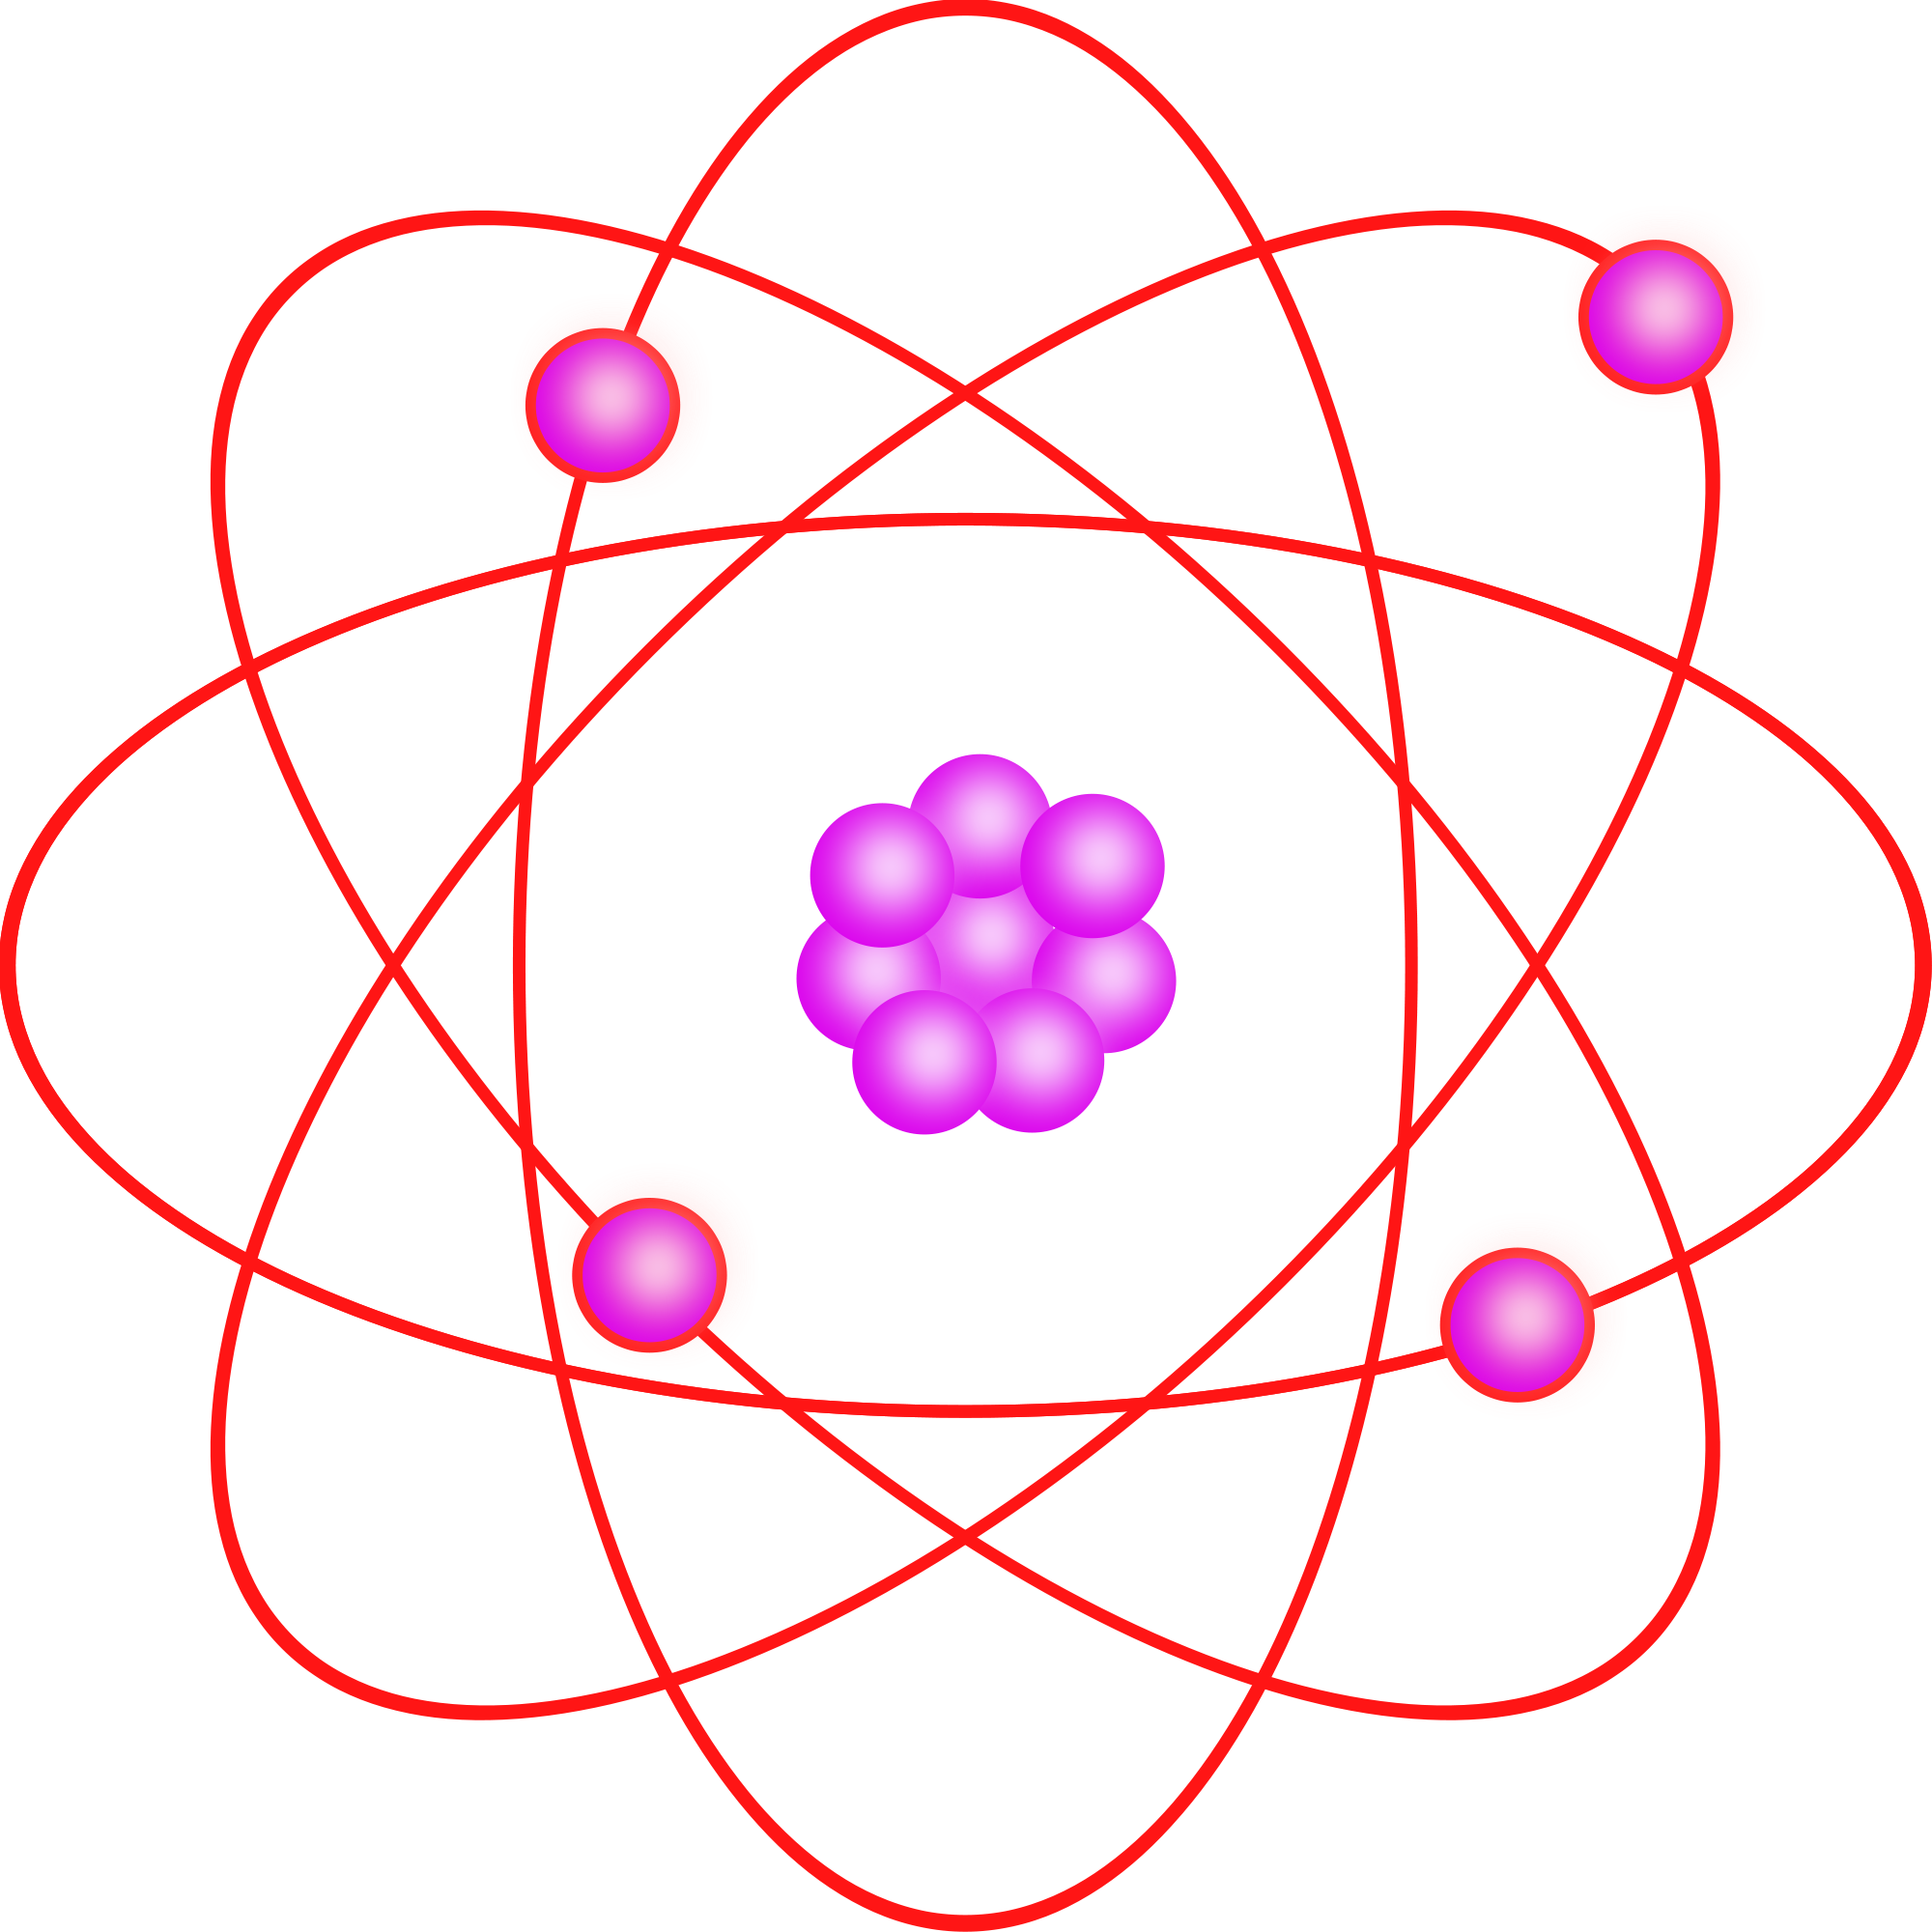 Atomic Symbol Complimentary In Evolution Photo Editor clipart free image.